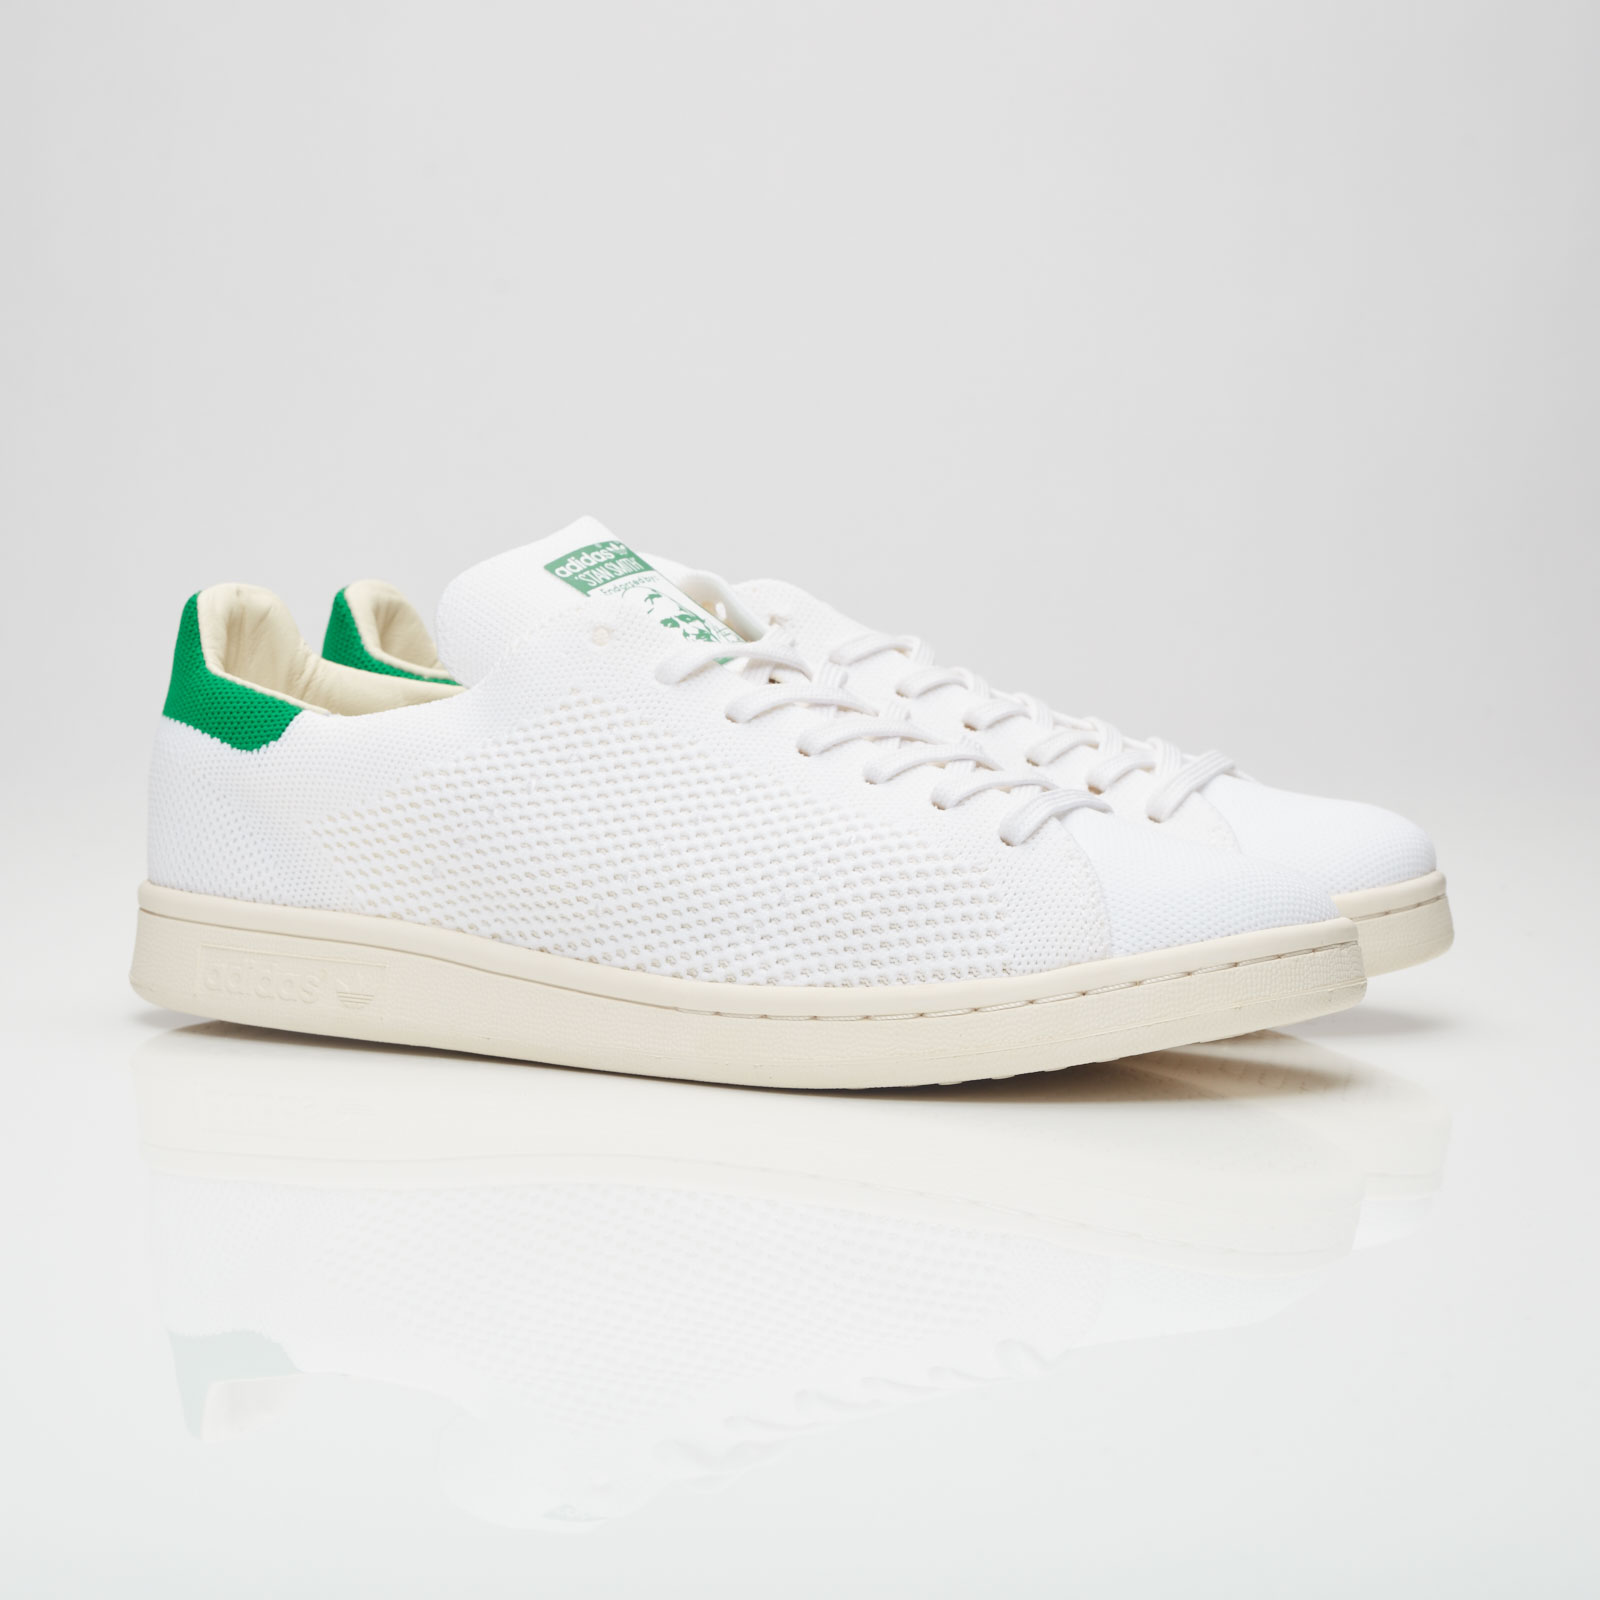 promo code feb22 0869e adidas Stan Smith OG PK - S75146 - Sneakersnstuff | sneakers ...